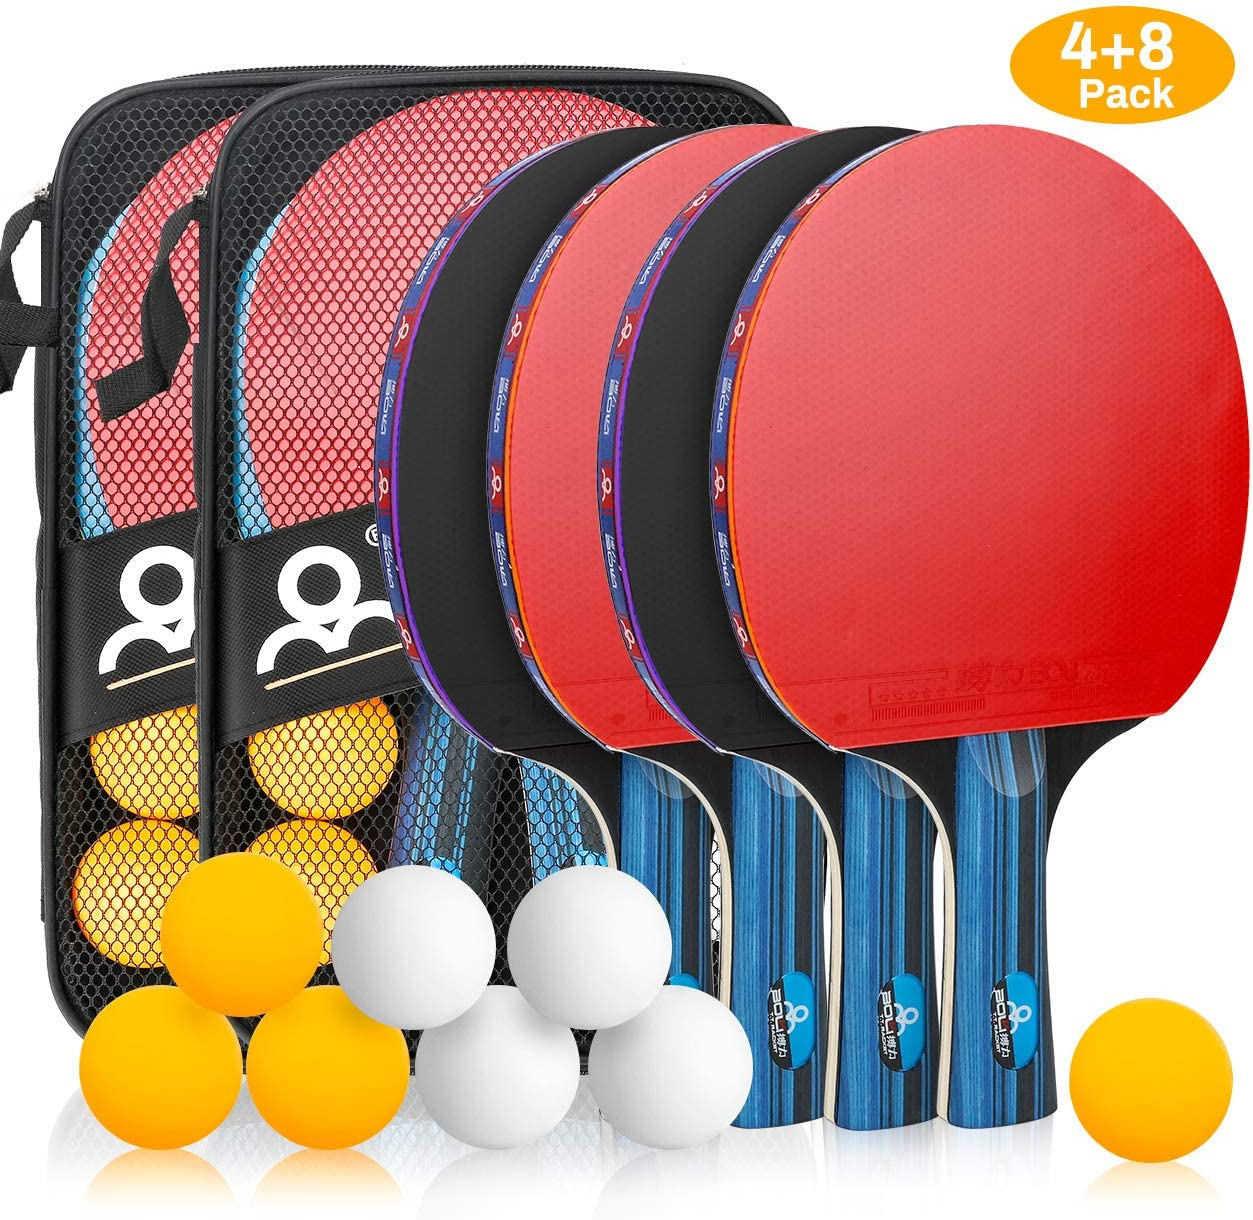 Allnice Ping Pong Set Portable Table Tennis Set Ping-Pong Game Pingpong Racket Set with 4Table Tennis Bats Rackets Paddles, 8 Ping-Pong Balls 2 Carry Cases for Trainers, Amateurs, Beginners, Expert